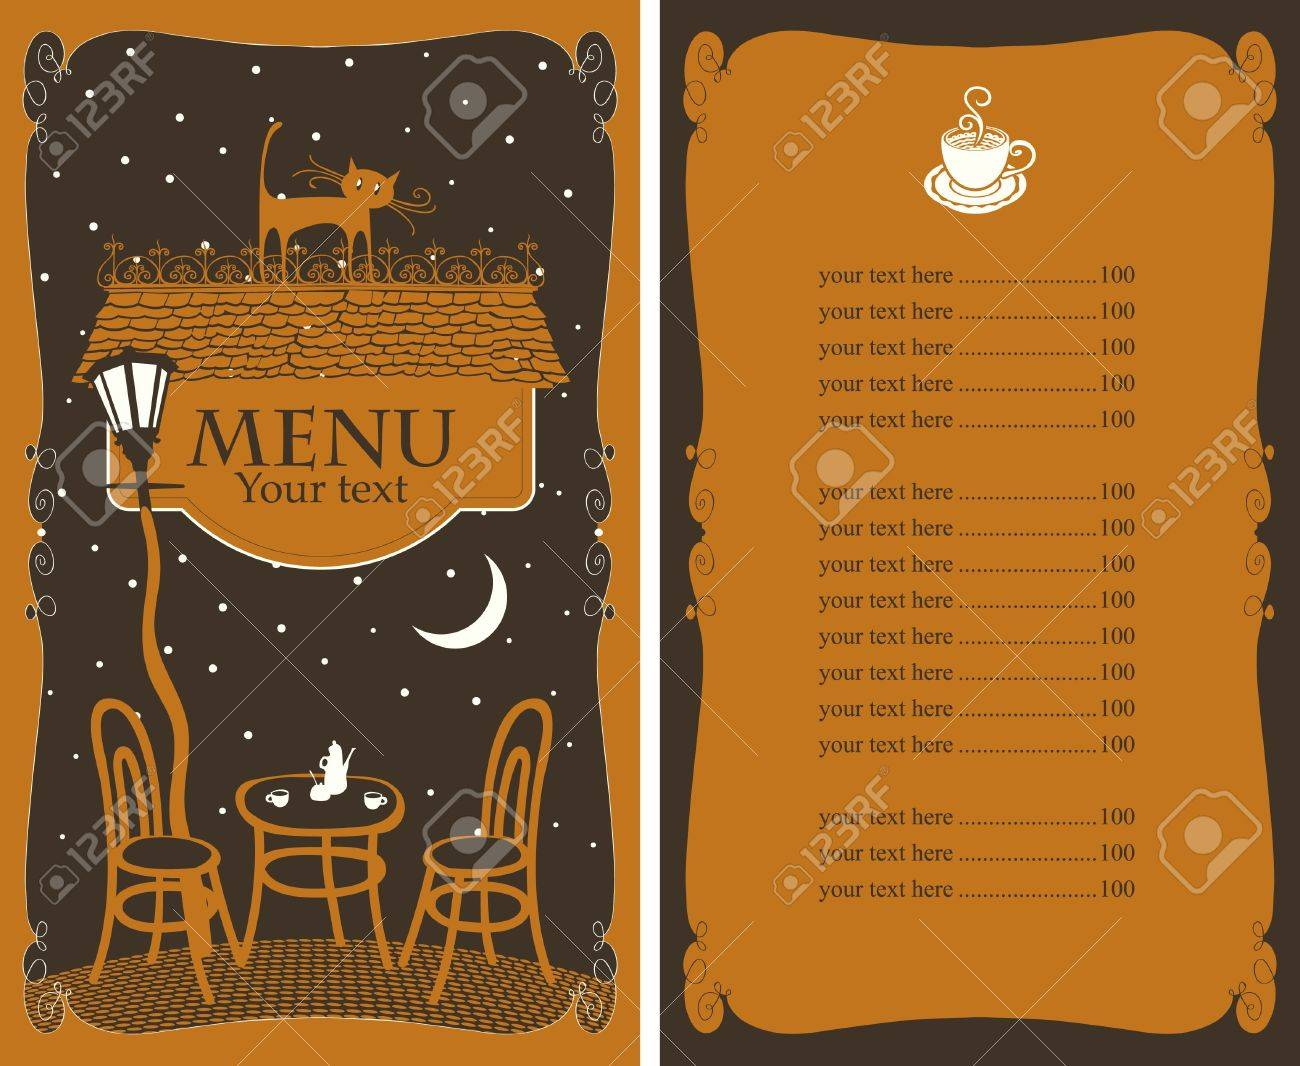 Menu For Cafe On Night Table Under Lamp Royalty Free Cliparts